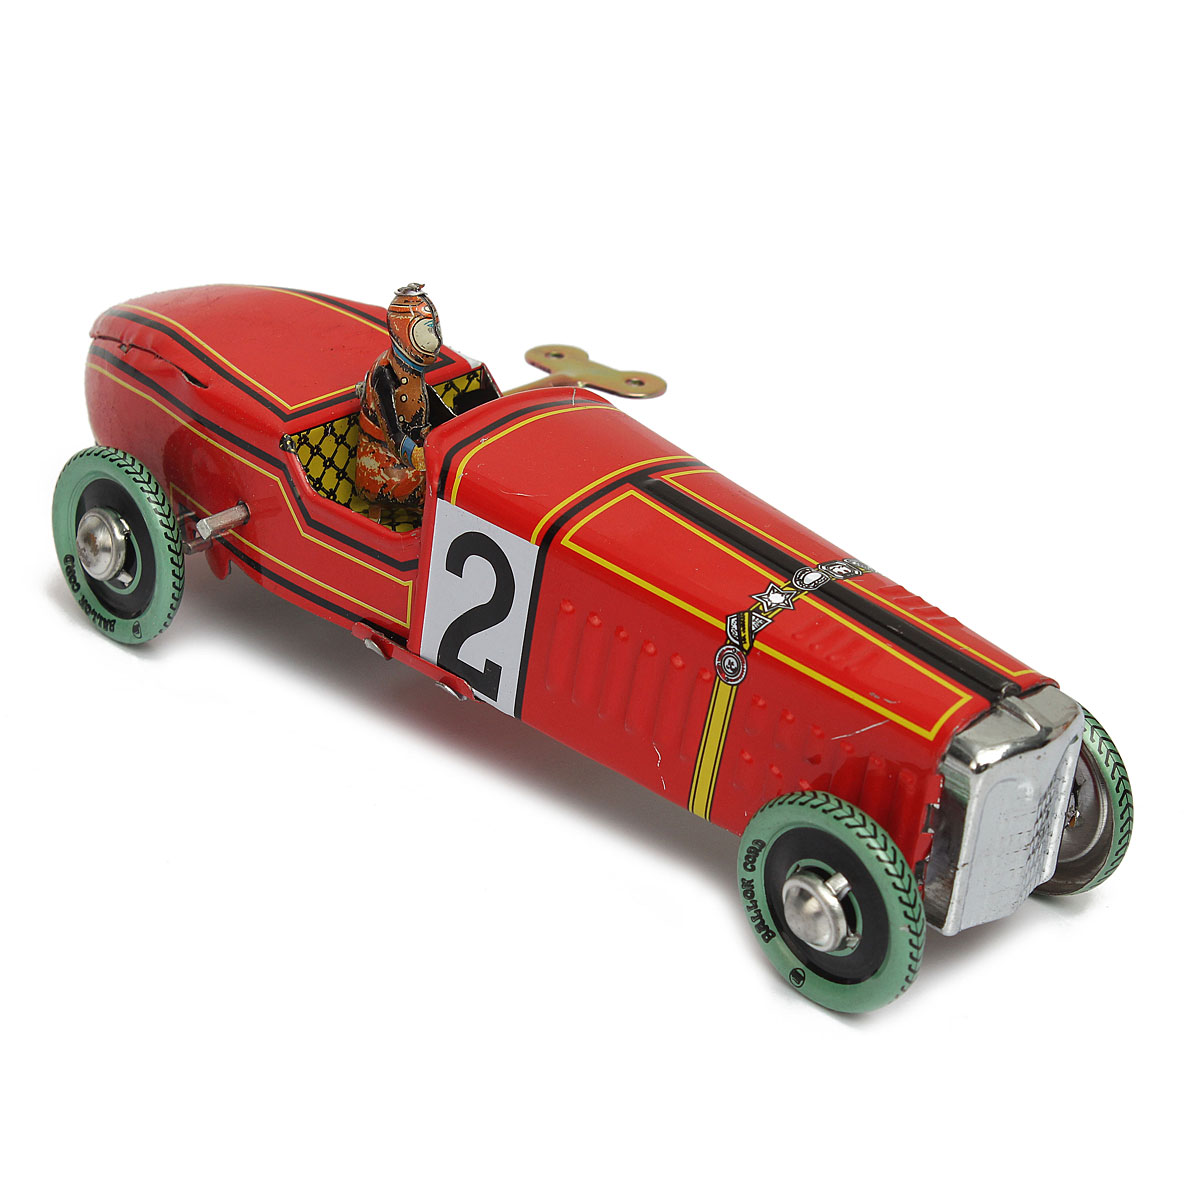 Wholesale Iron metal handicraft Vintage red Wind Up Racing old classic Race Car model Clockwork tin Vehicle toy Collectable Gift(China (Mainland))